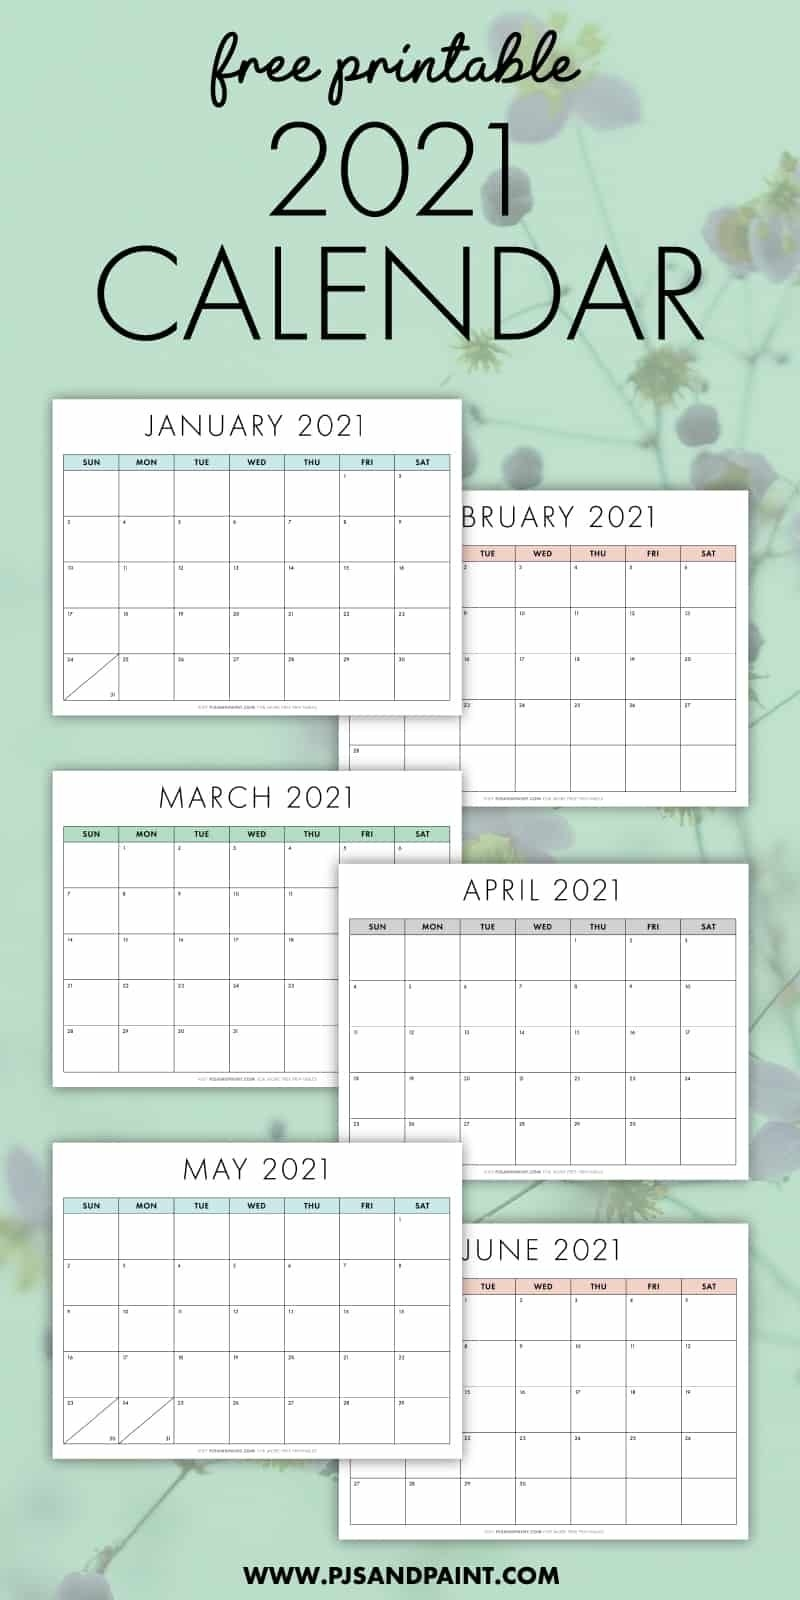 Free Printable 2021 Calendar - Sunday Start - Pjs And Paint inside Free Calendar Template 2021 Printable With Lines Image